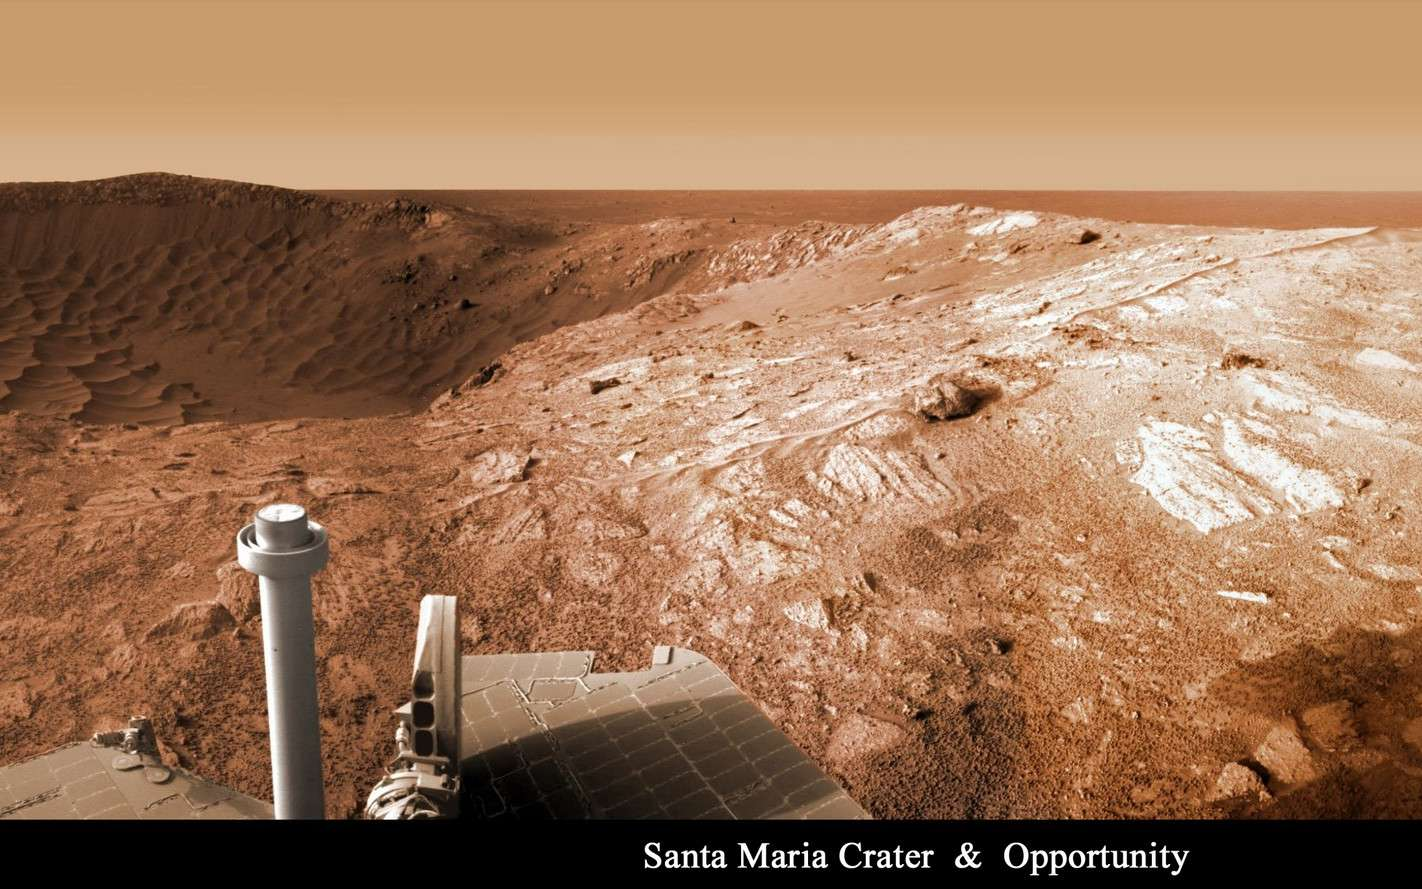 Opportunity face au cratère Santa Maria. © Mars Exploration Rover Mission/Nasa/JPL/Cornell/Marco Di Lorenzo/Kenneth Kremer